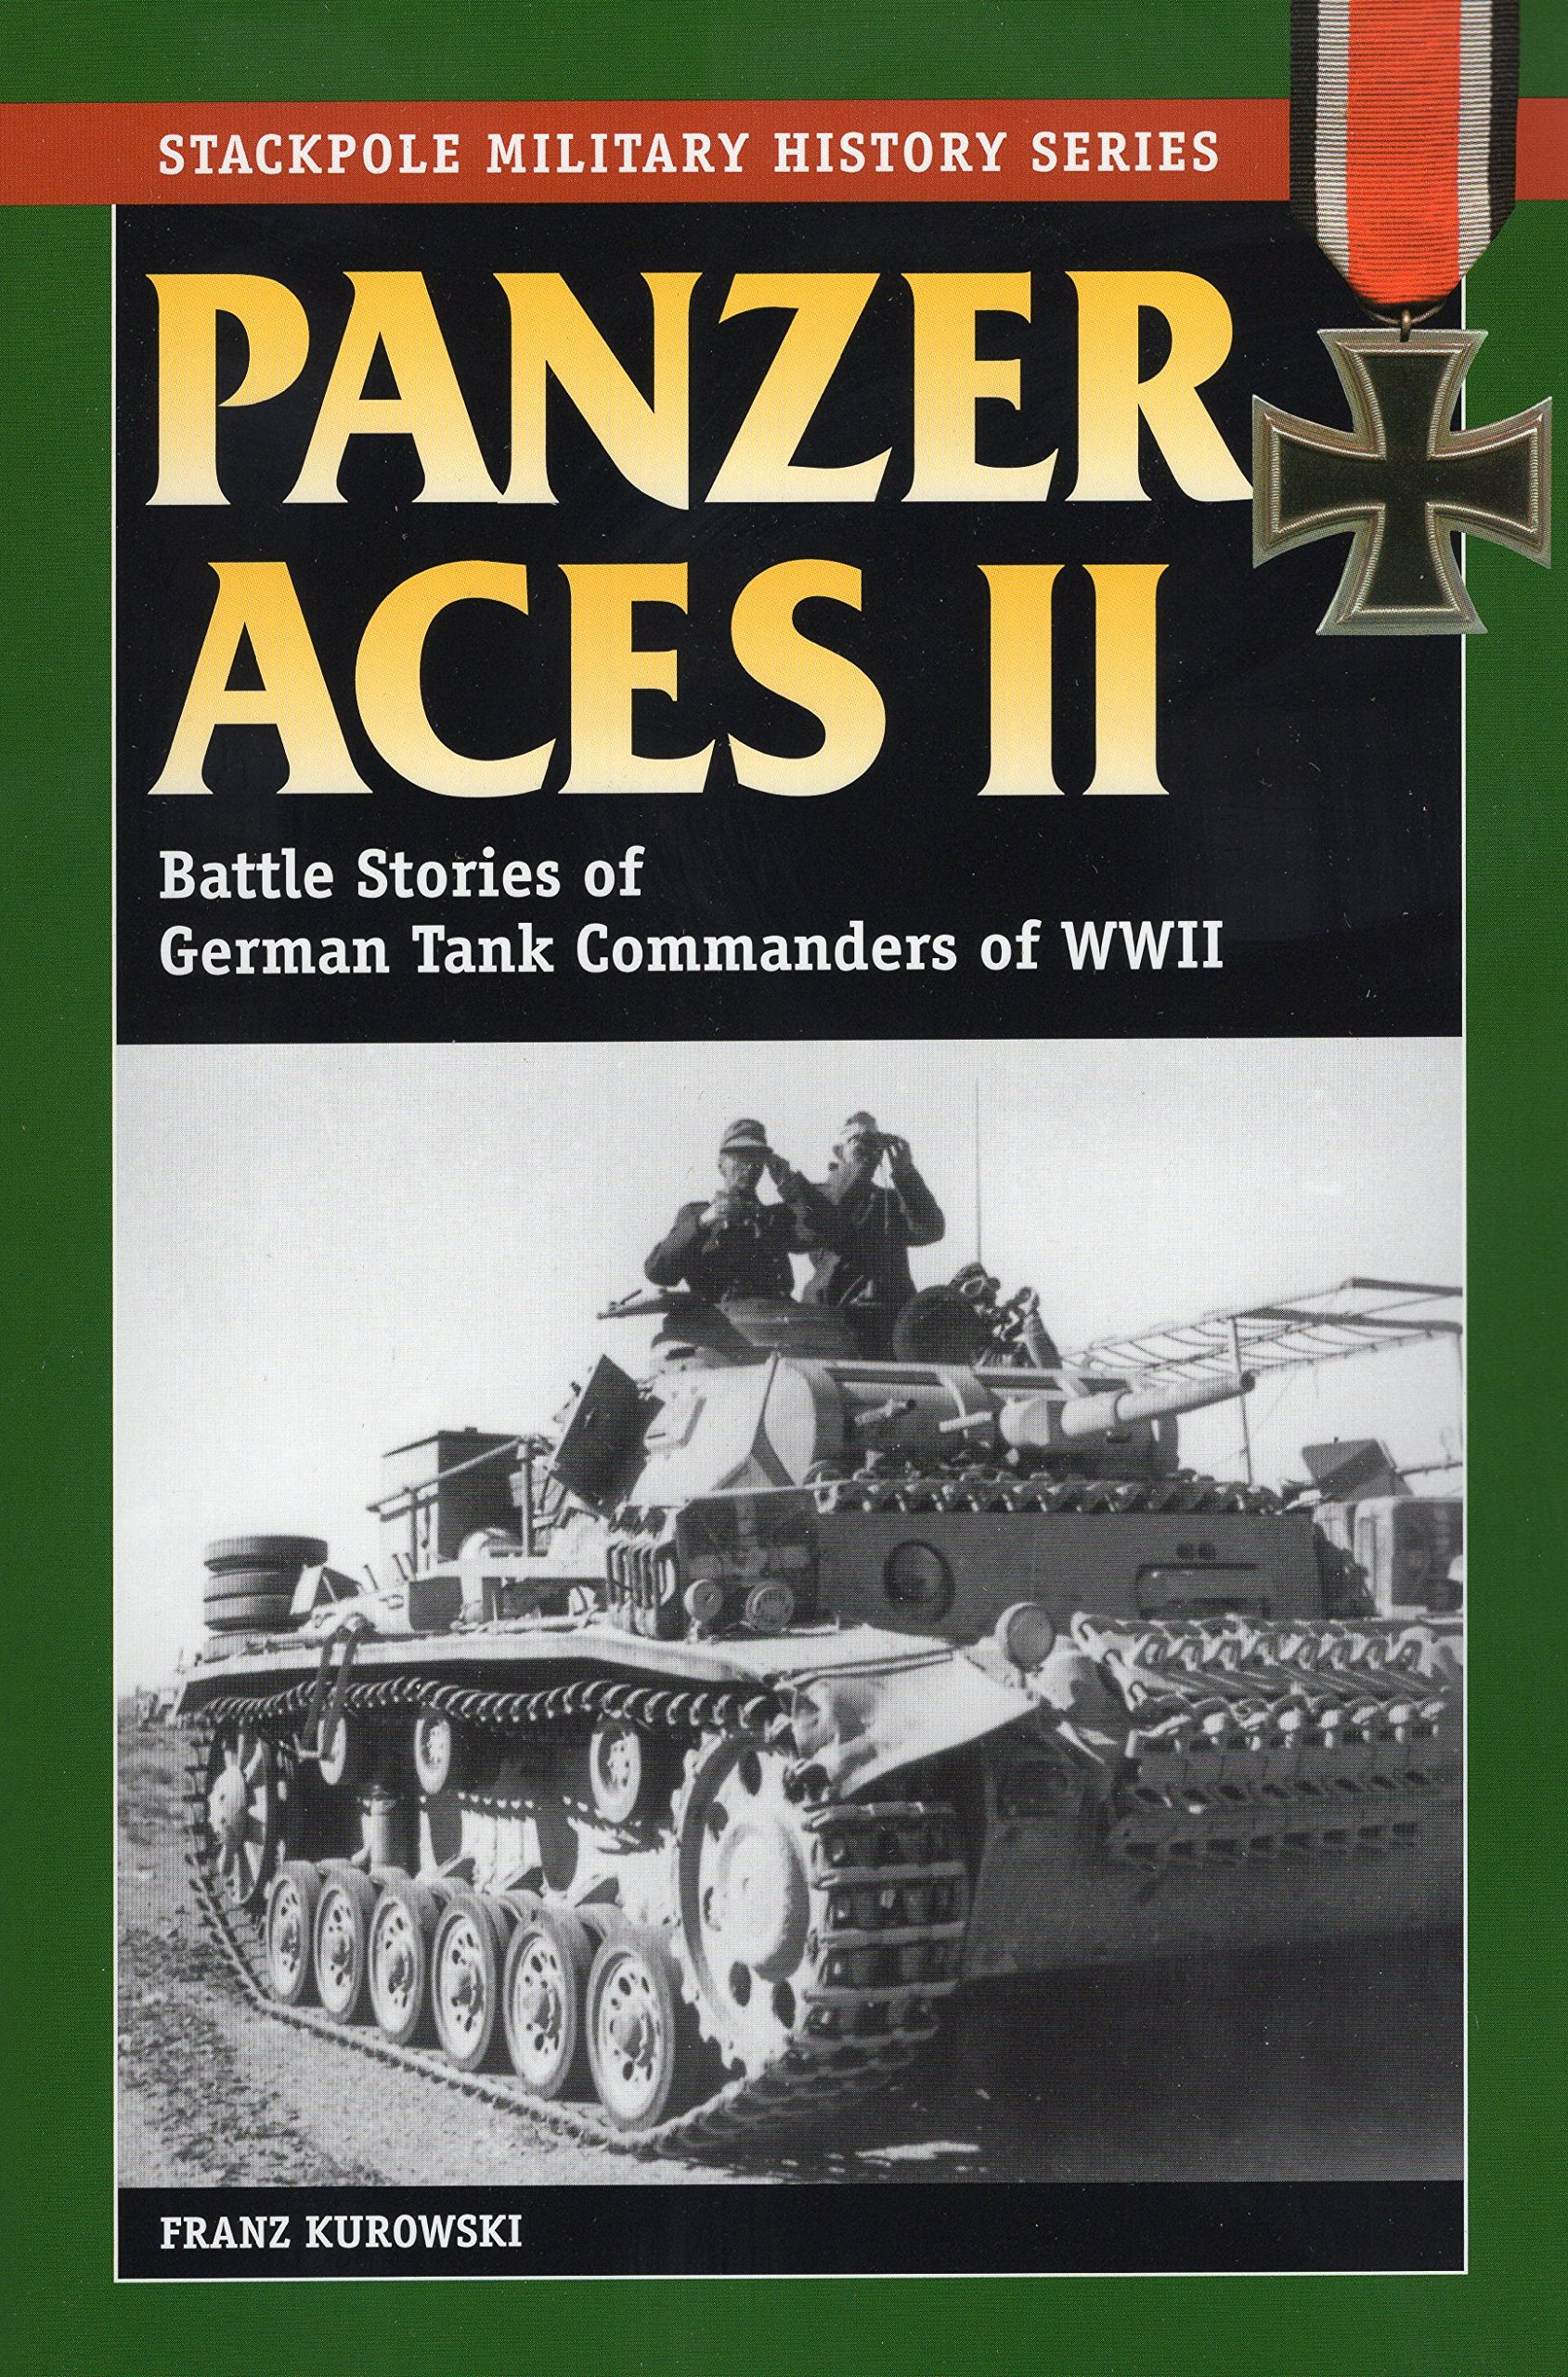 Panzer Aces II: Battles Stories of German Tank Commanders of WWII (Stackpole Military History Series)